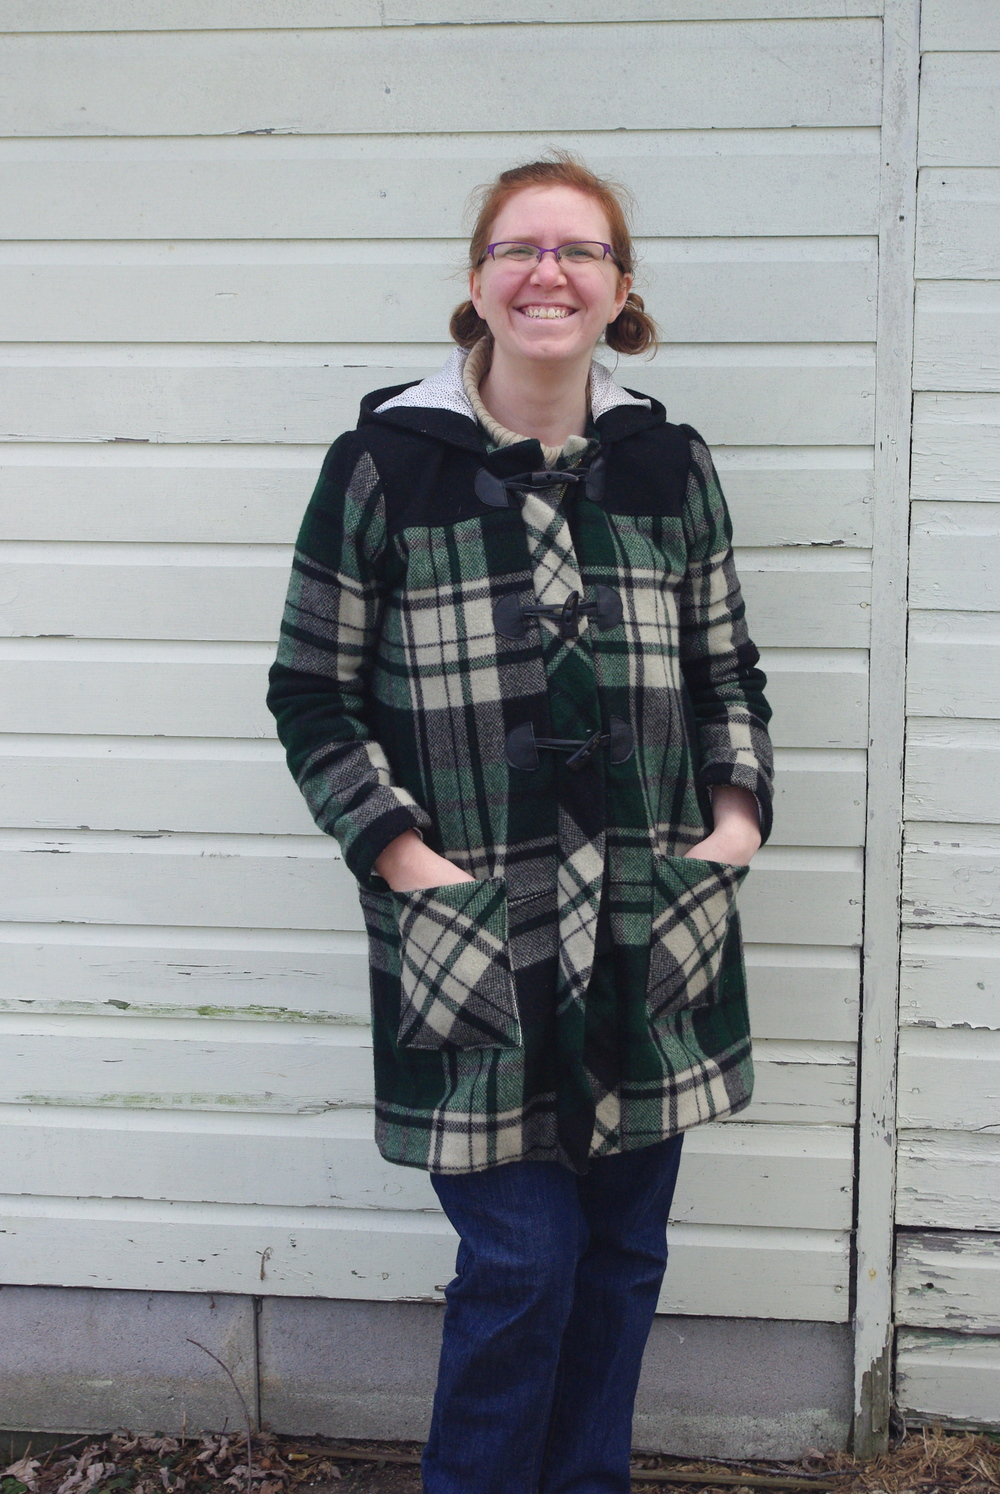 Cascade Duffle Coat sewn by Ms. Cleaver